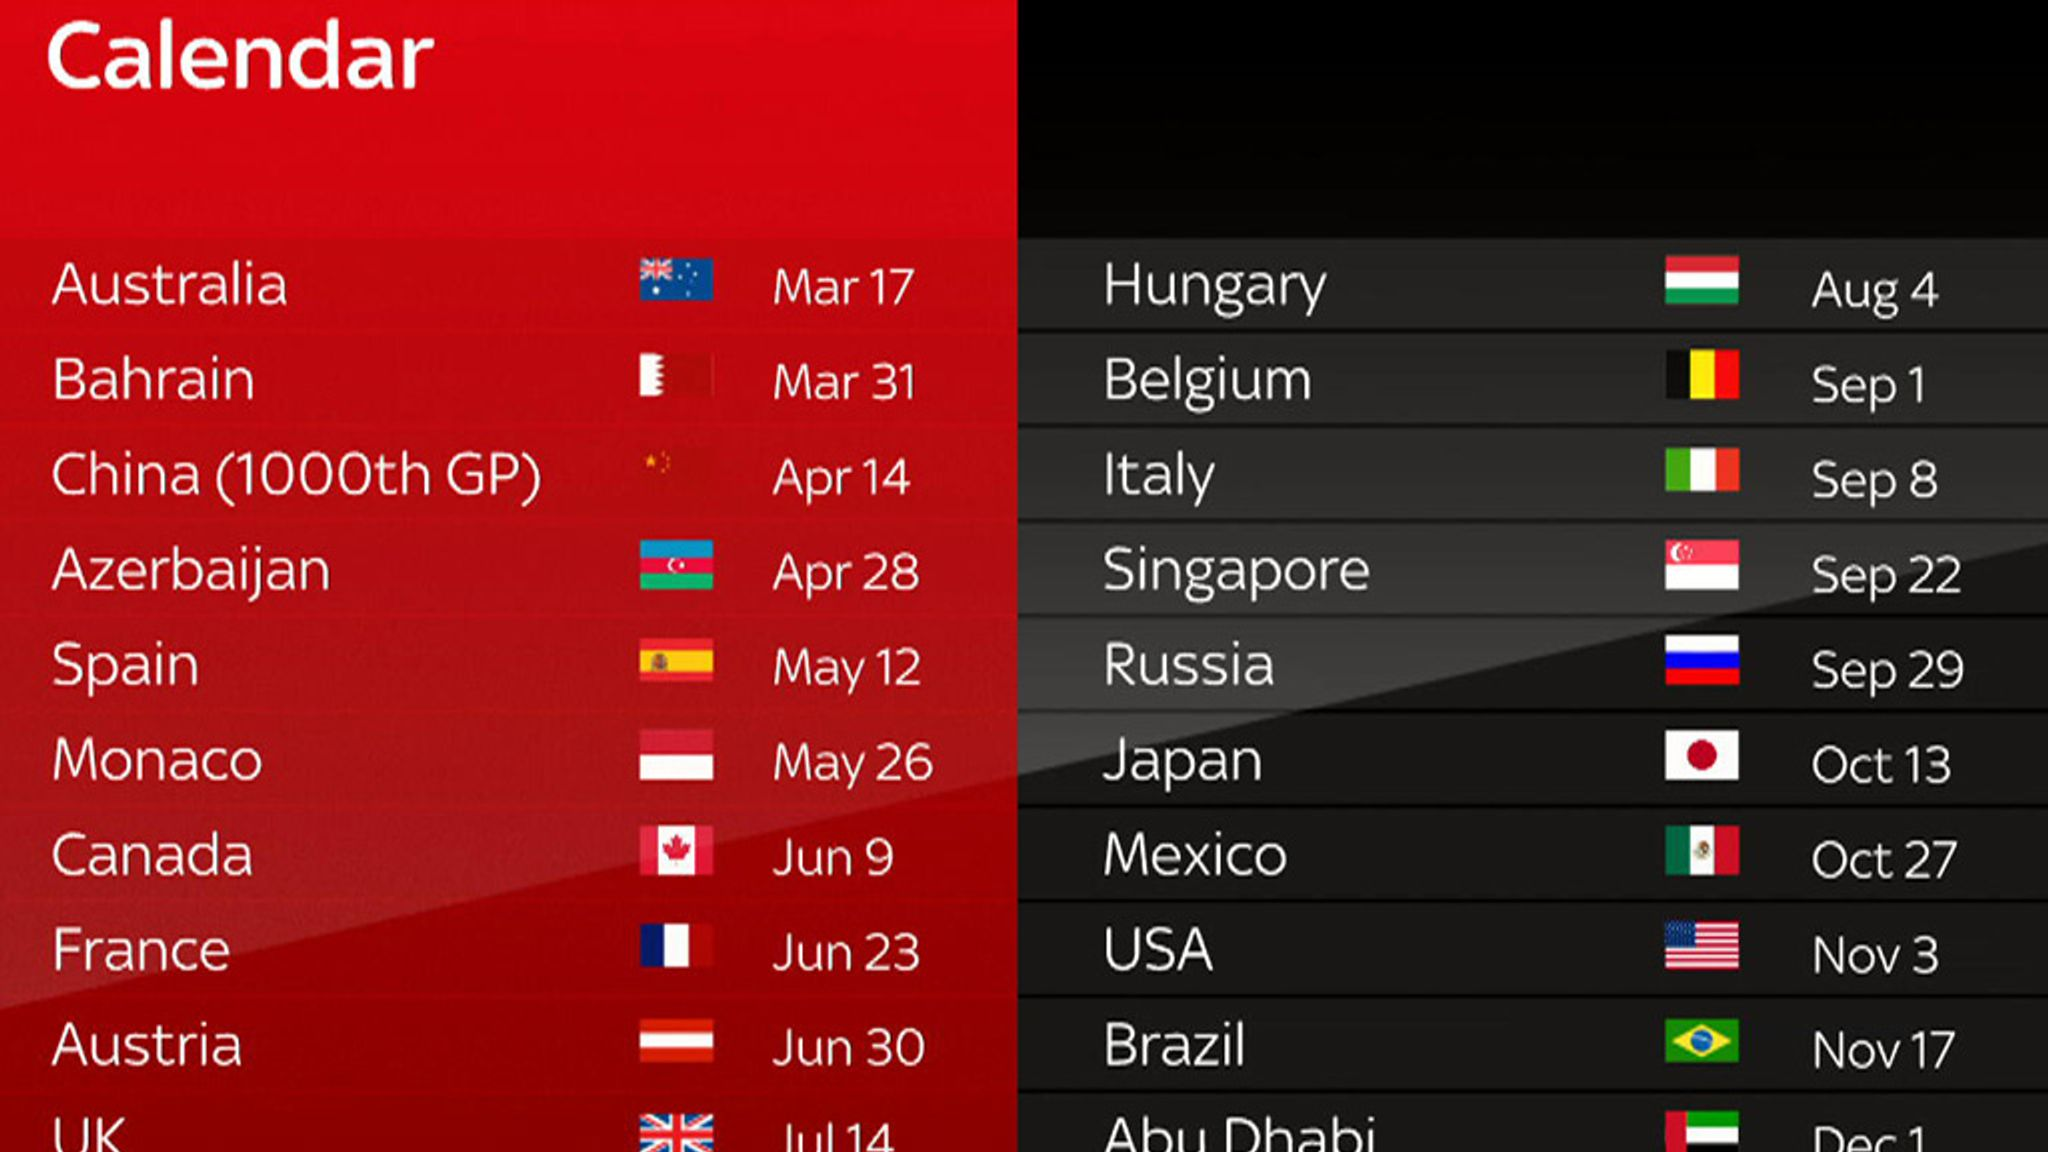 F1 2020 Calendar Dates F1 2019 schedule: 21 race calendar and December finish | F1 News